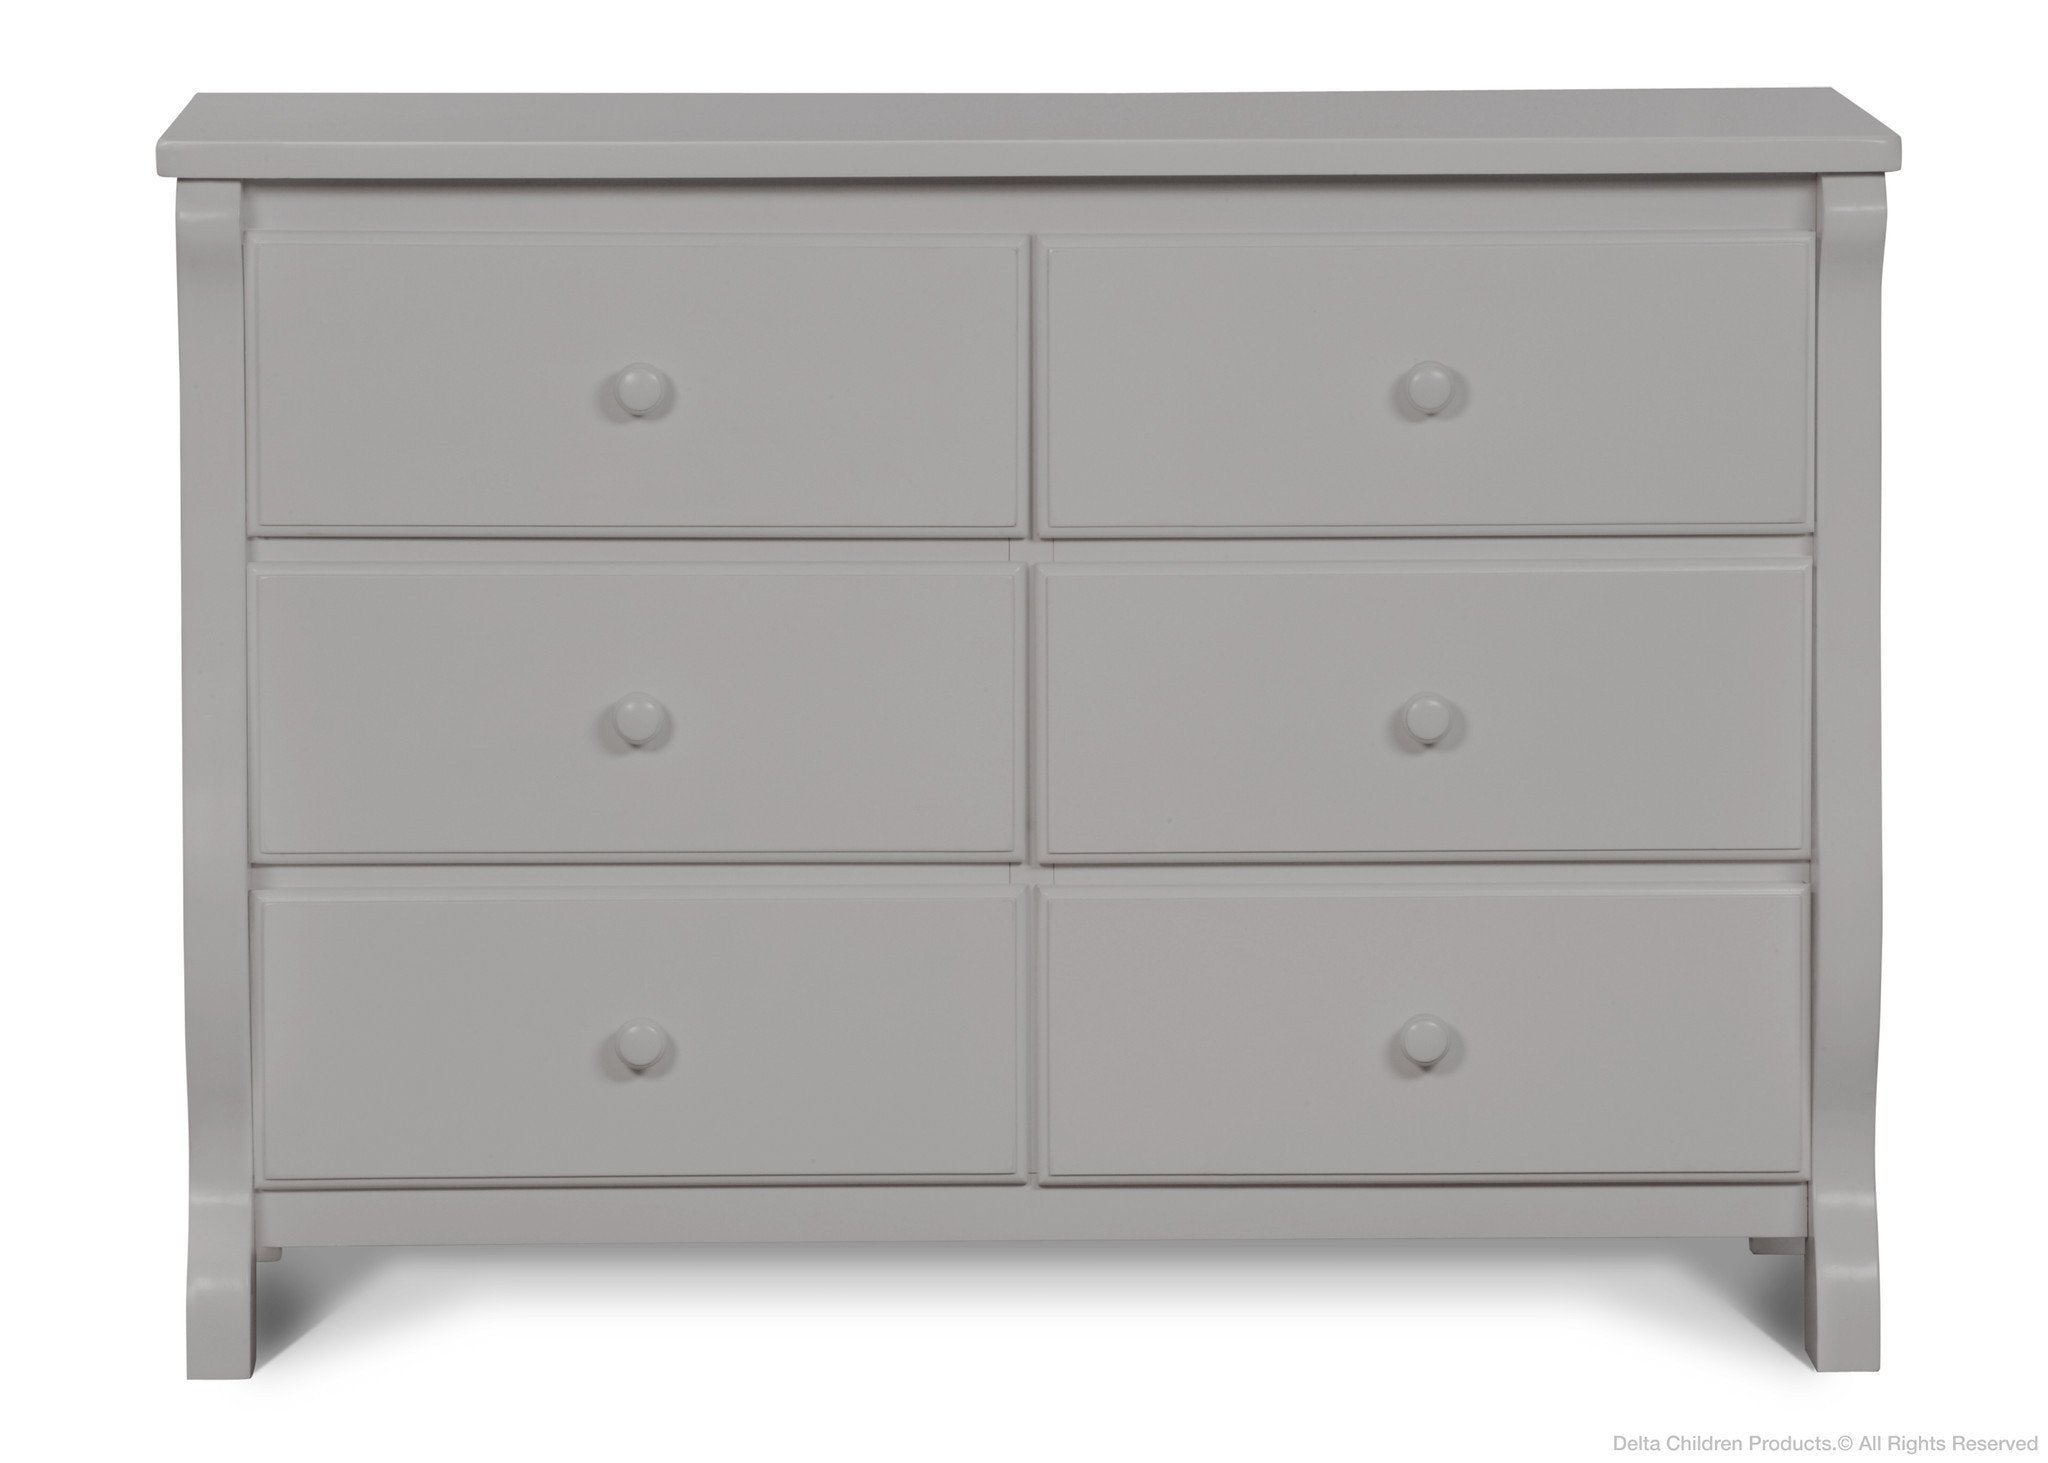 Delta Children Grey (026) Canton / Eclipse Dresser Front View b1b